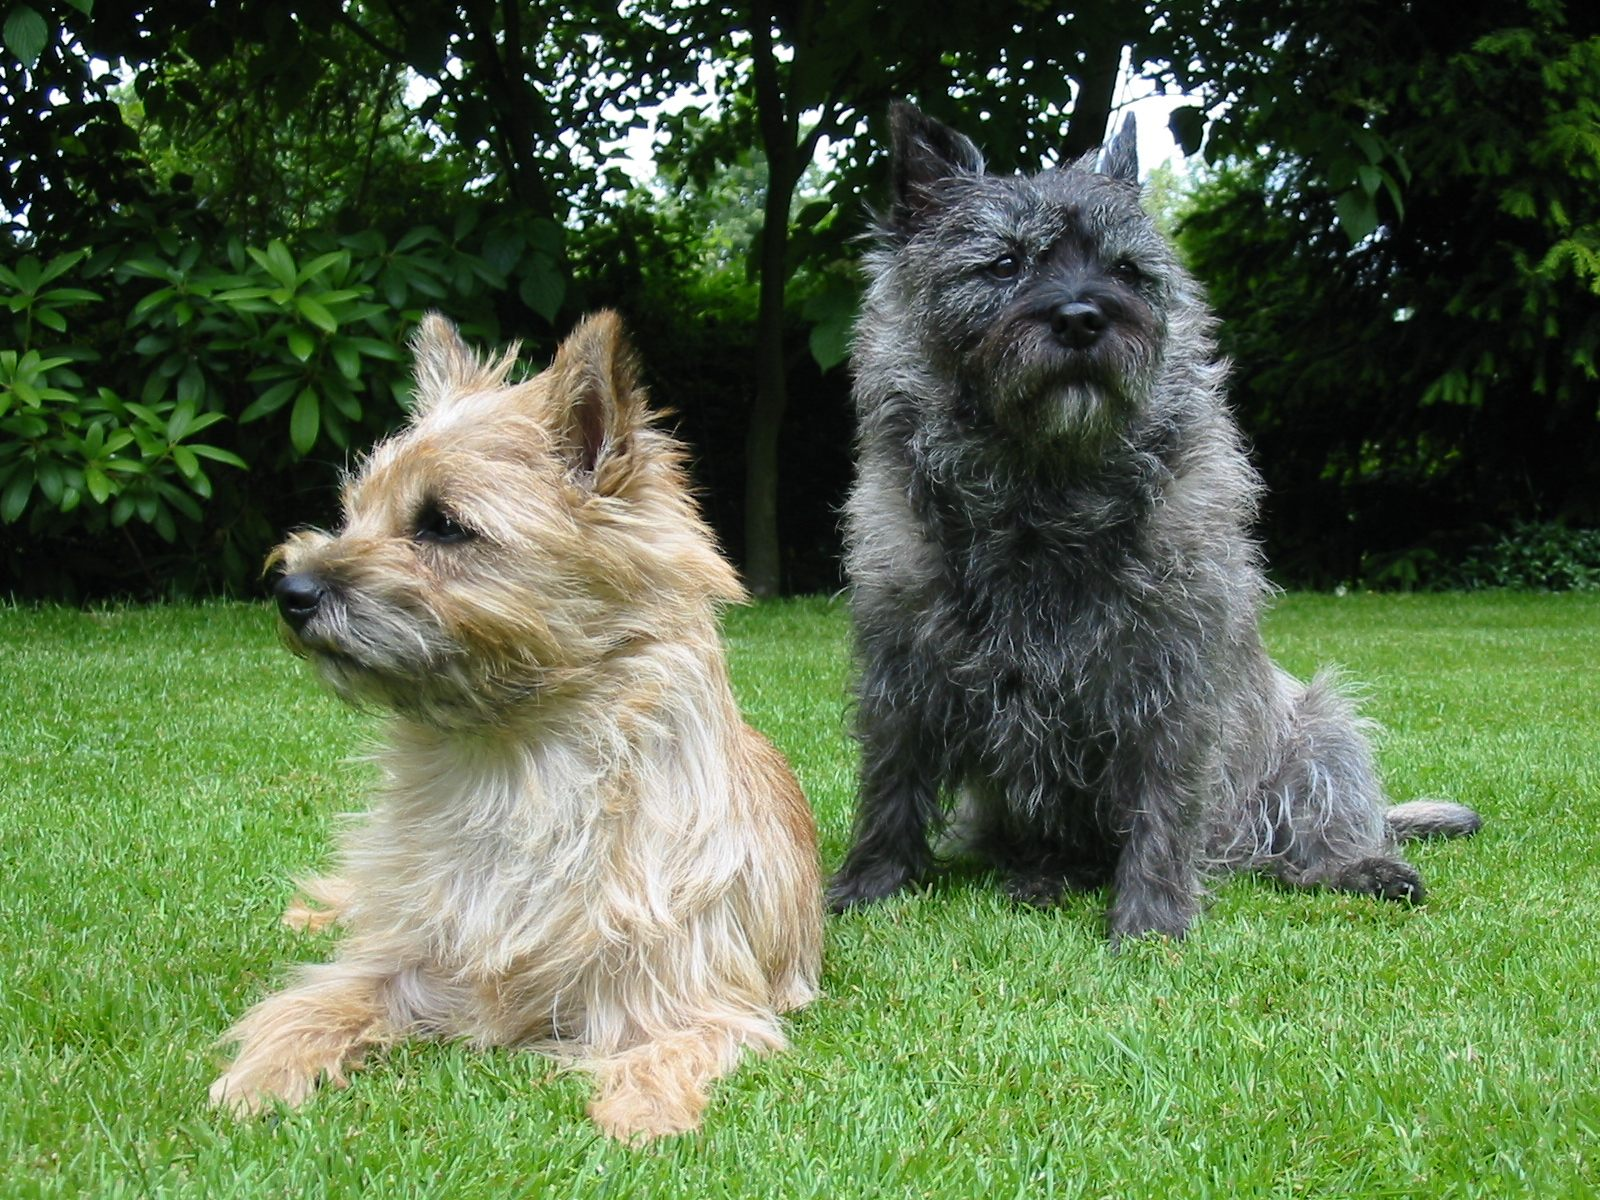 """""""Cairn-Terrier-Garten1"""" by Ketterechts at the German language Wikipedia. Licensed under CC BY-SA 3.0 via Commons - https://commons.wikimedia.org/wiki/File:Cairn-Terrier-Garten1.jpg#/media/File:Cairn-Terrier-Garten1.jpg"""